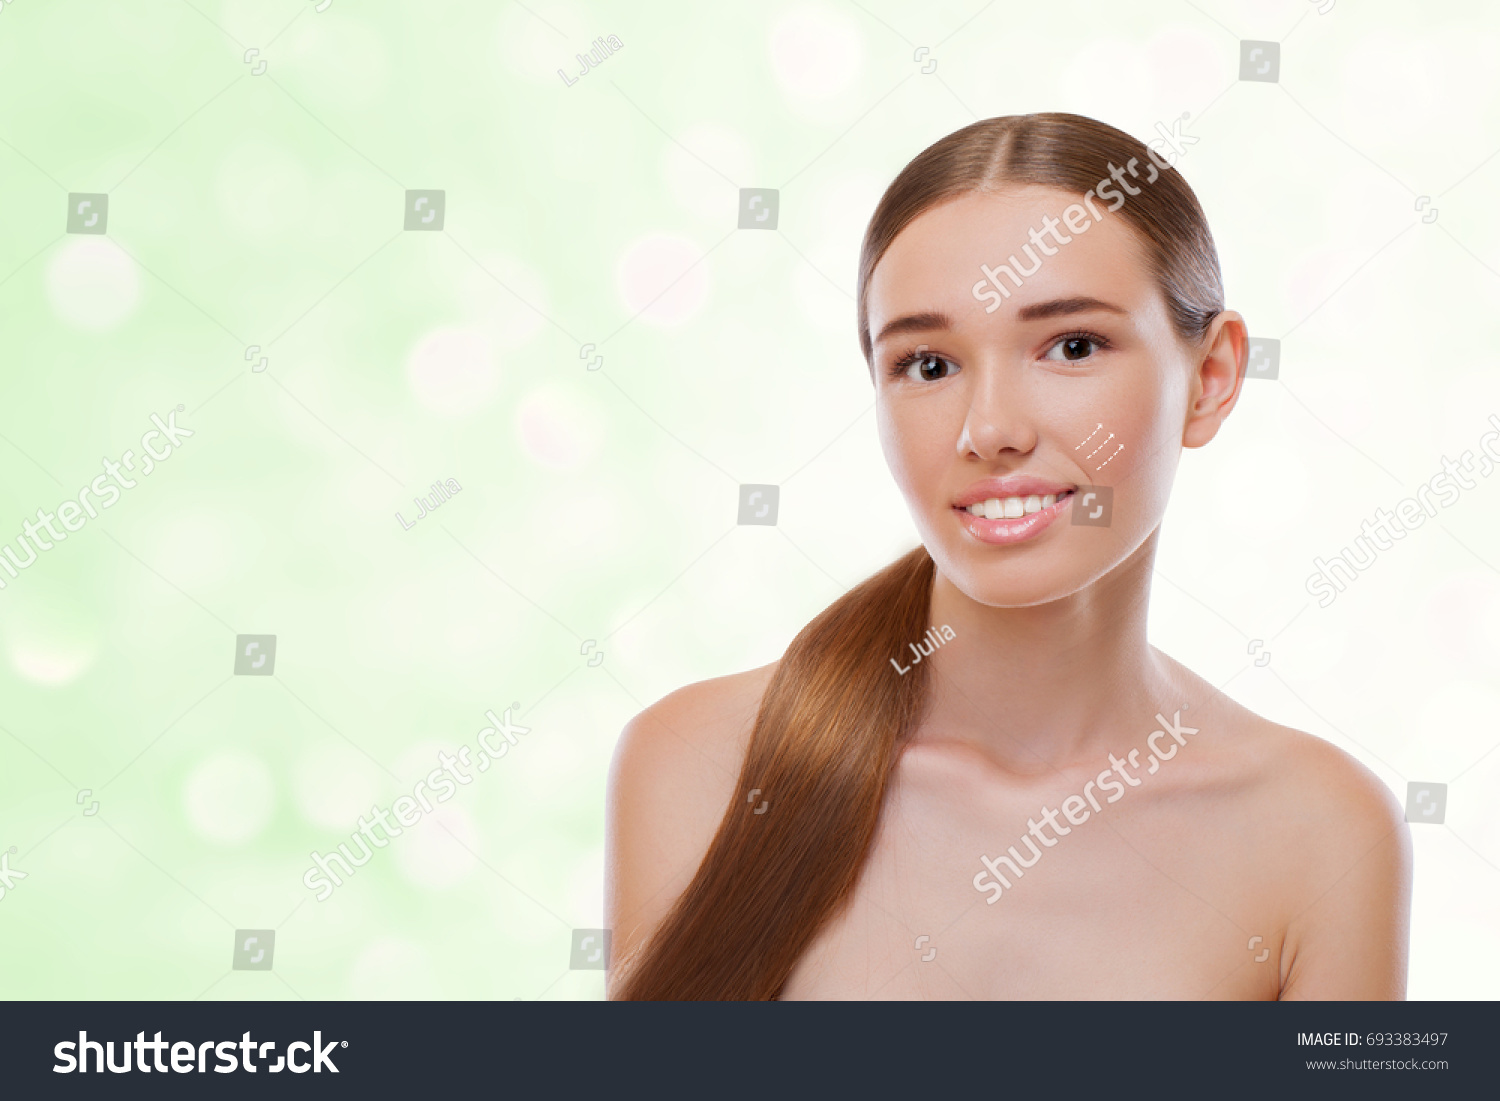 Amazing Girl With Beautiful Smile And Fresh Face Skin Looking At The Camera Close Up